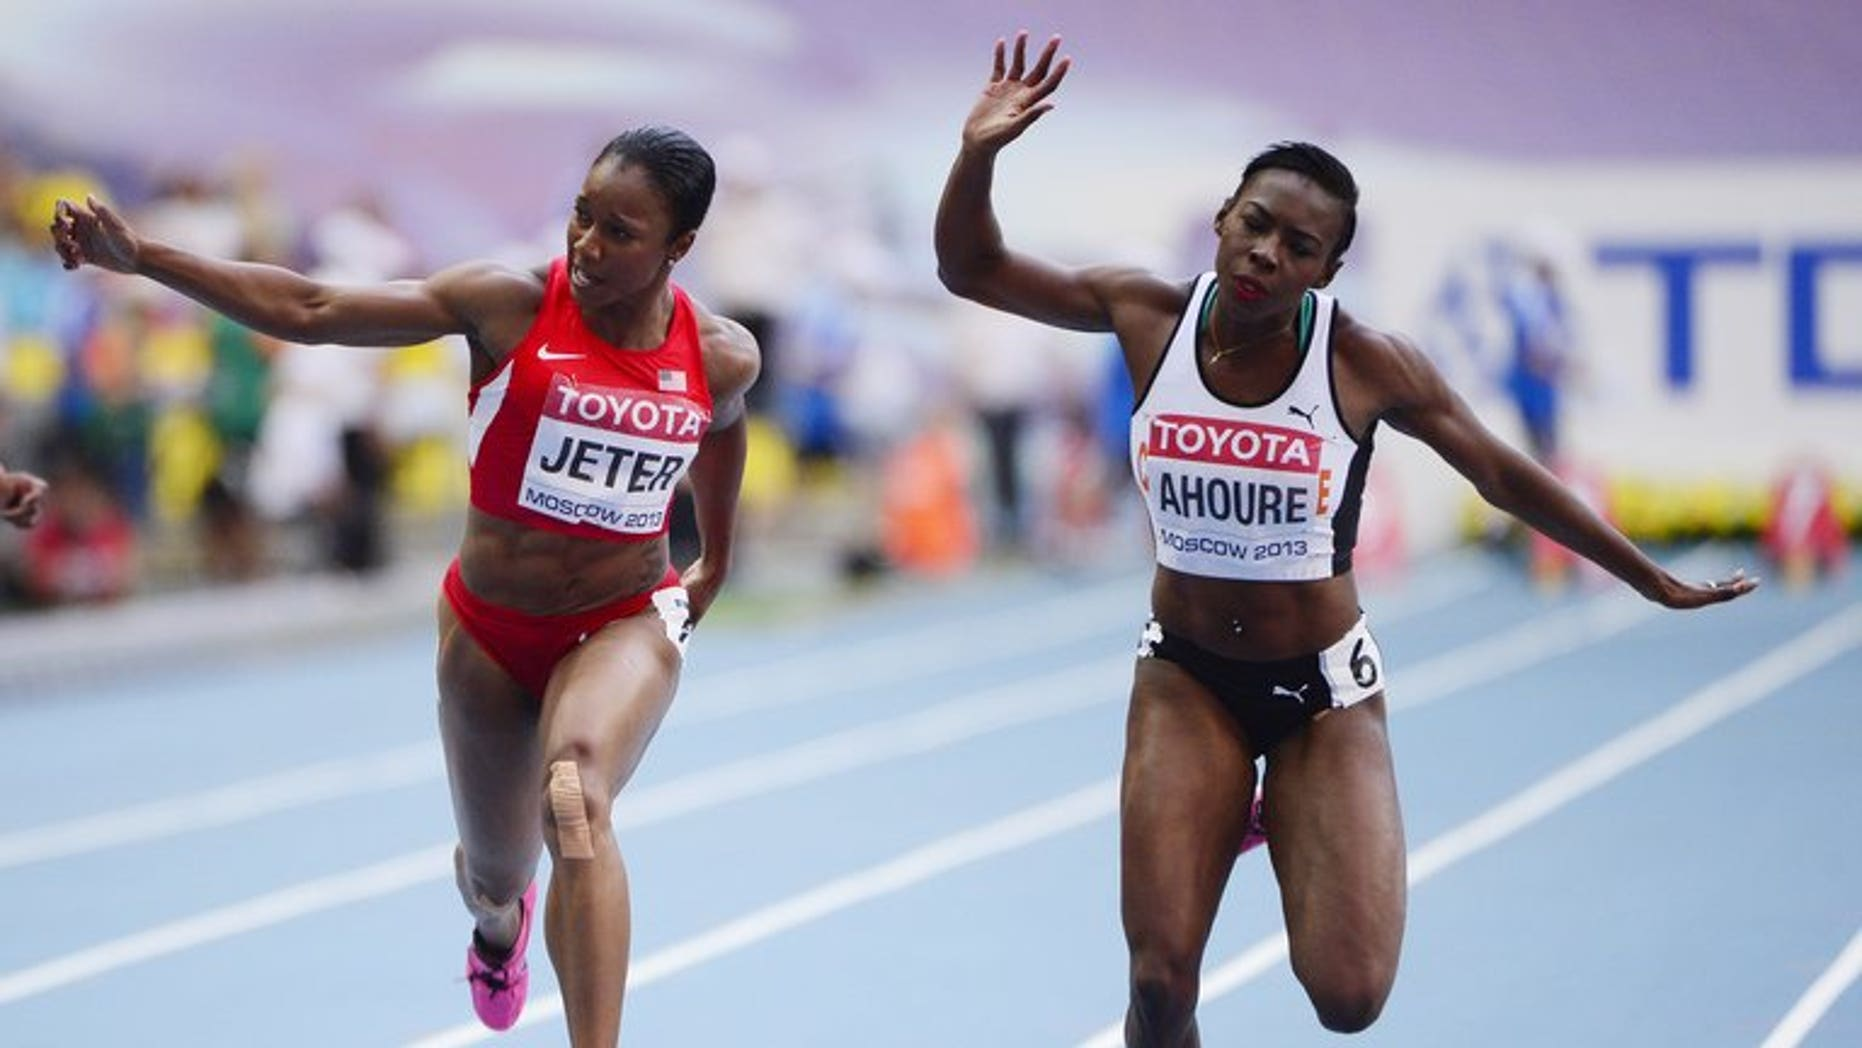 US's Carmelita Jeter and Ivory Coast's Murielle Ahoure (right) compete in heat 2 of the women's 100 metres semi-final at the 2013 IAAF World Championships at the Luzhniki stadium in Moscow on August 12, 2013. Ahoure made history in becoming the first female African sprinter to win a medal in the history of the World Athletics Championships in the 100 metres.